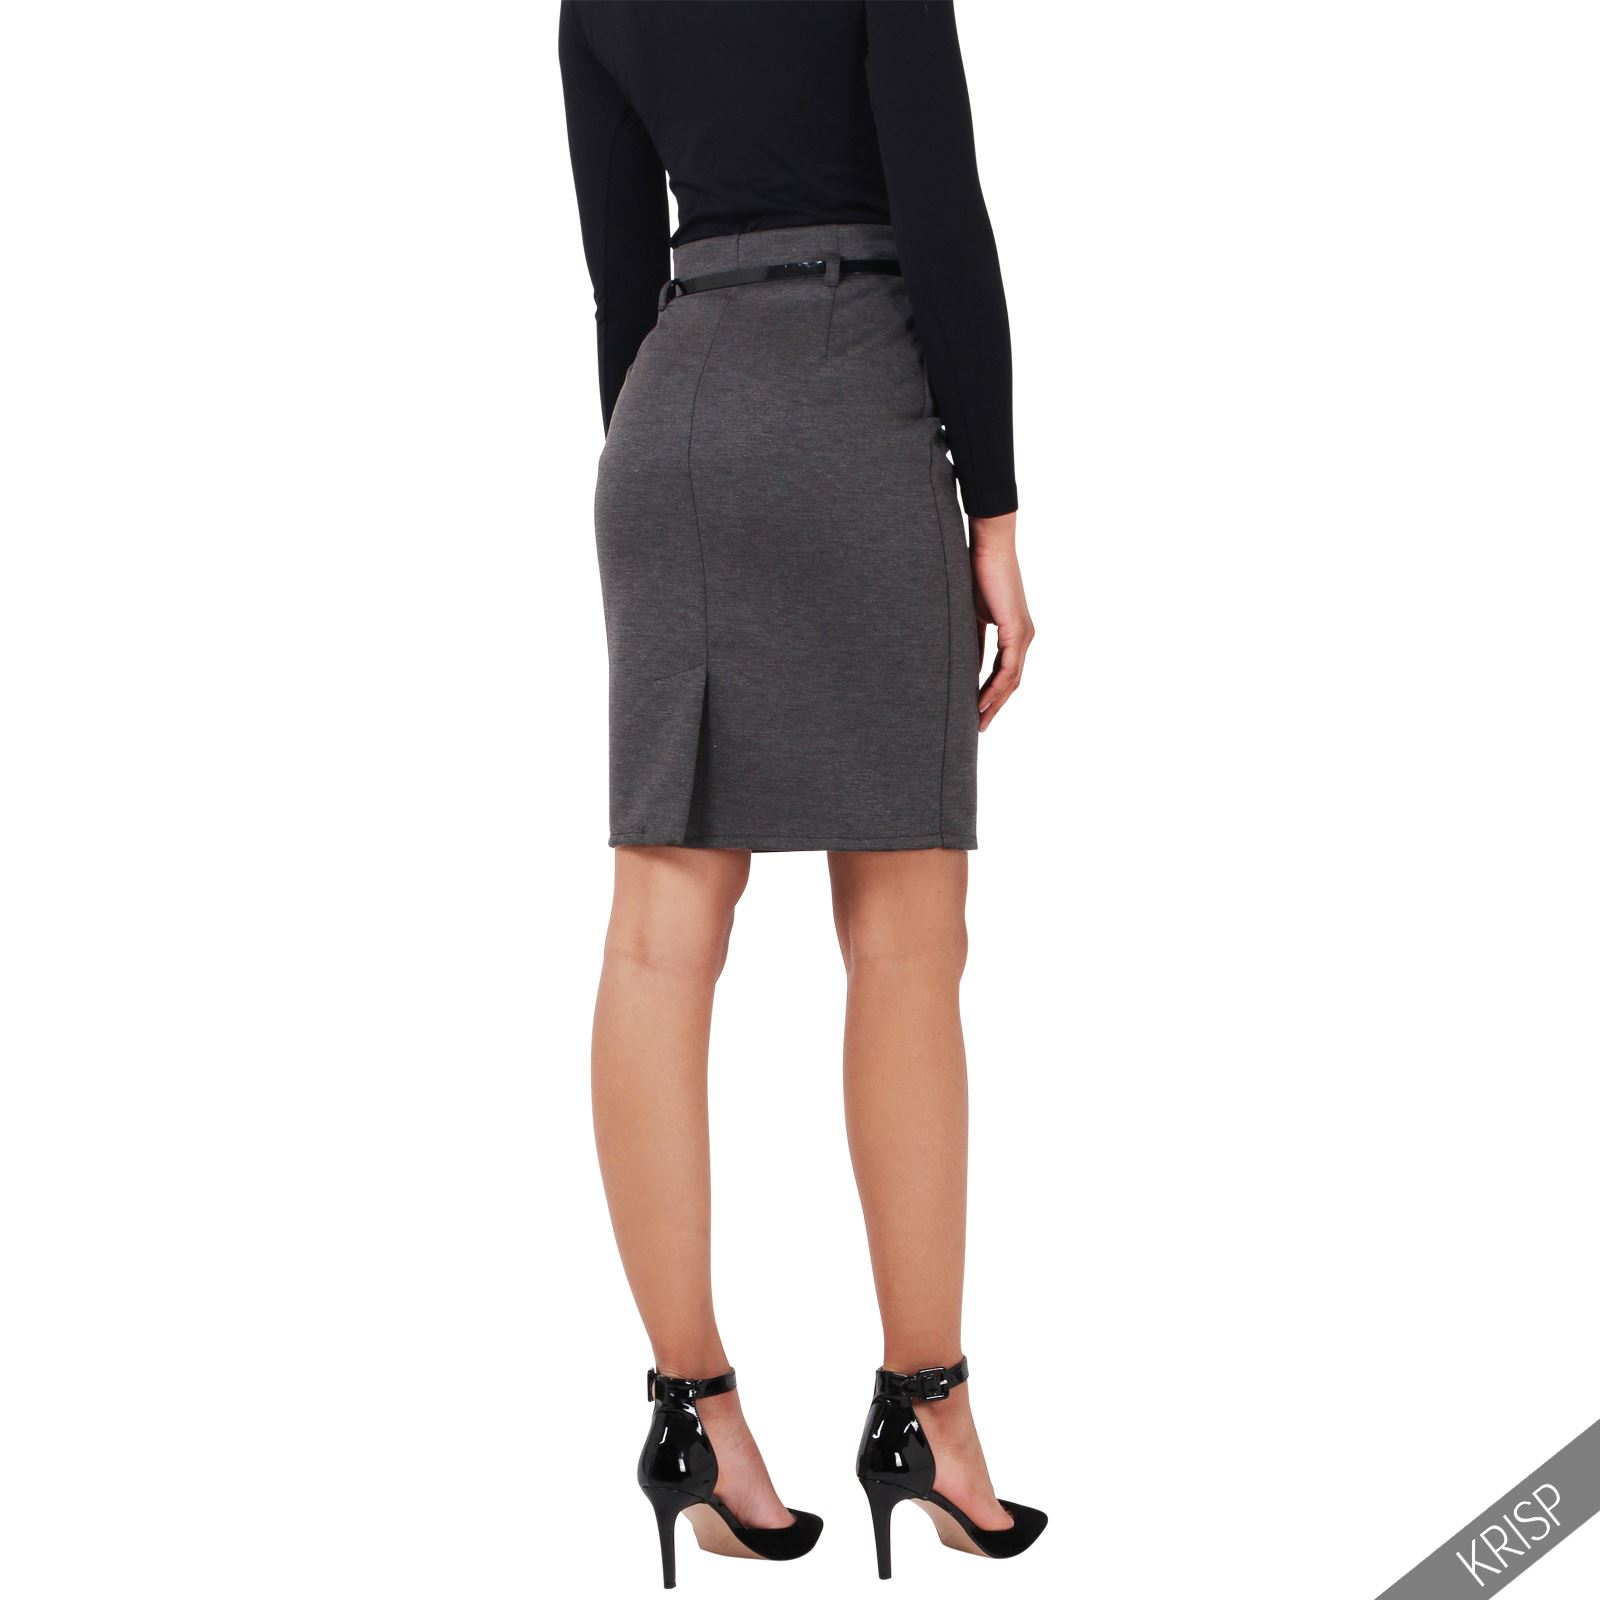 Versatile %color %size Work Skirts: The Building Blocks of a Stunning Wardrobe